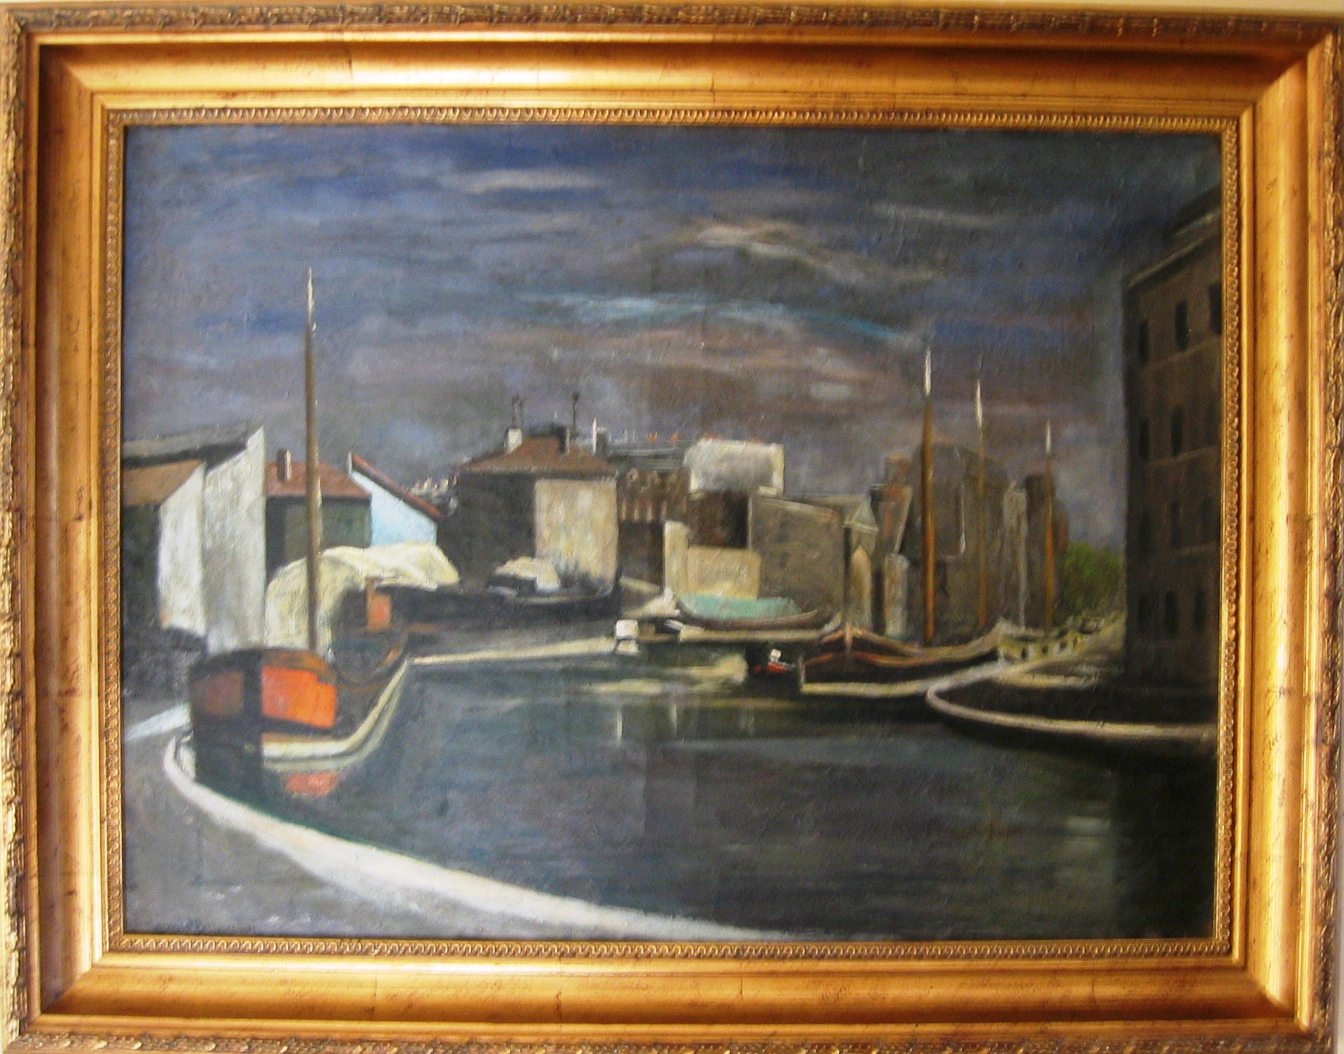 Port. Oil on canvas, signed. Size: 80 x 60 cm. c. 1926.